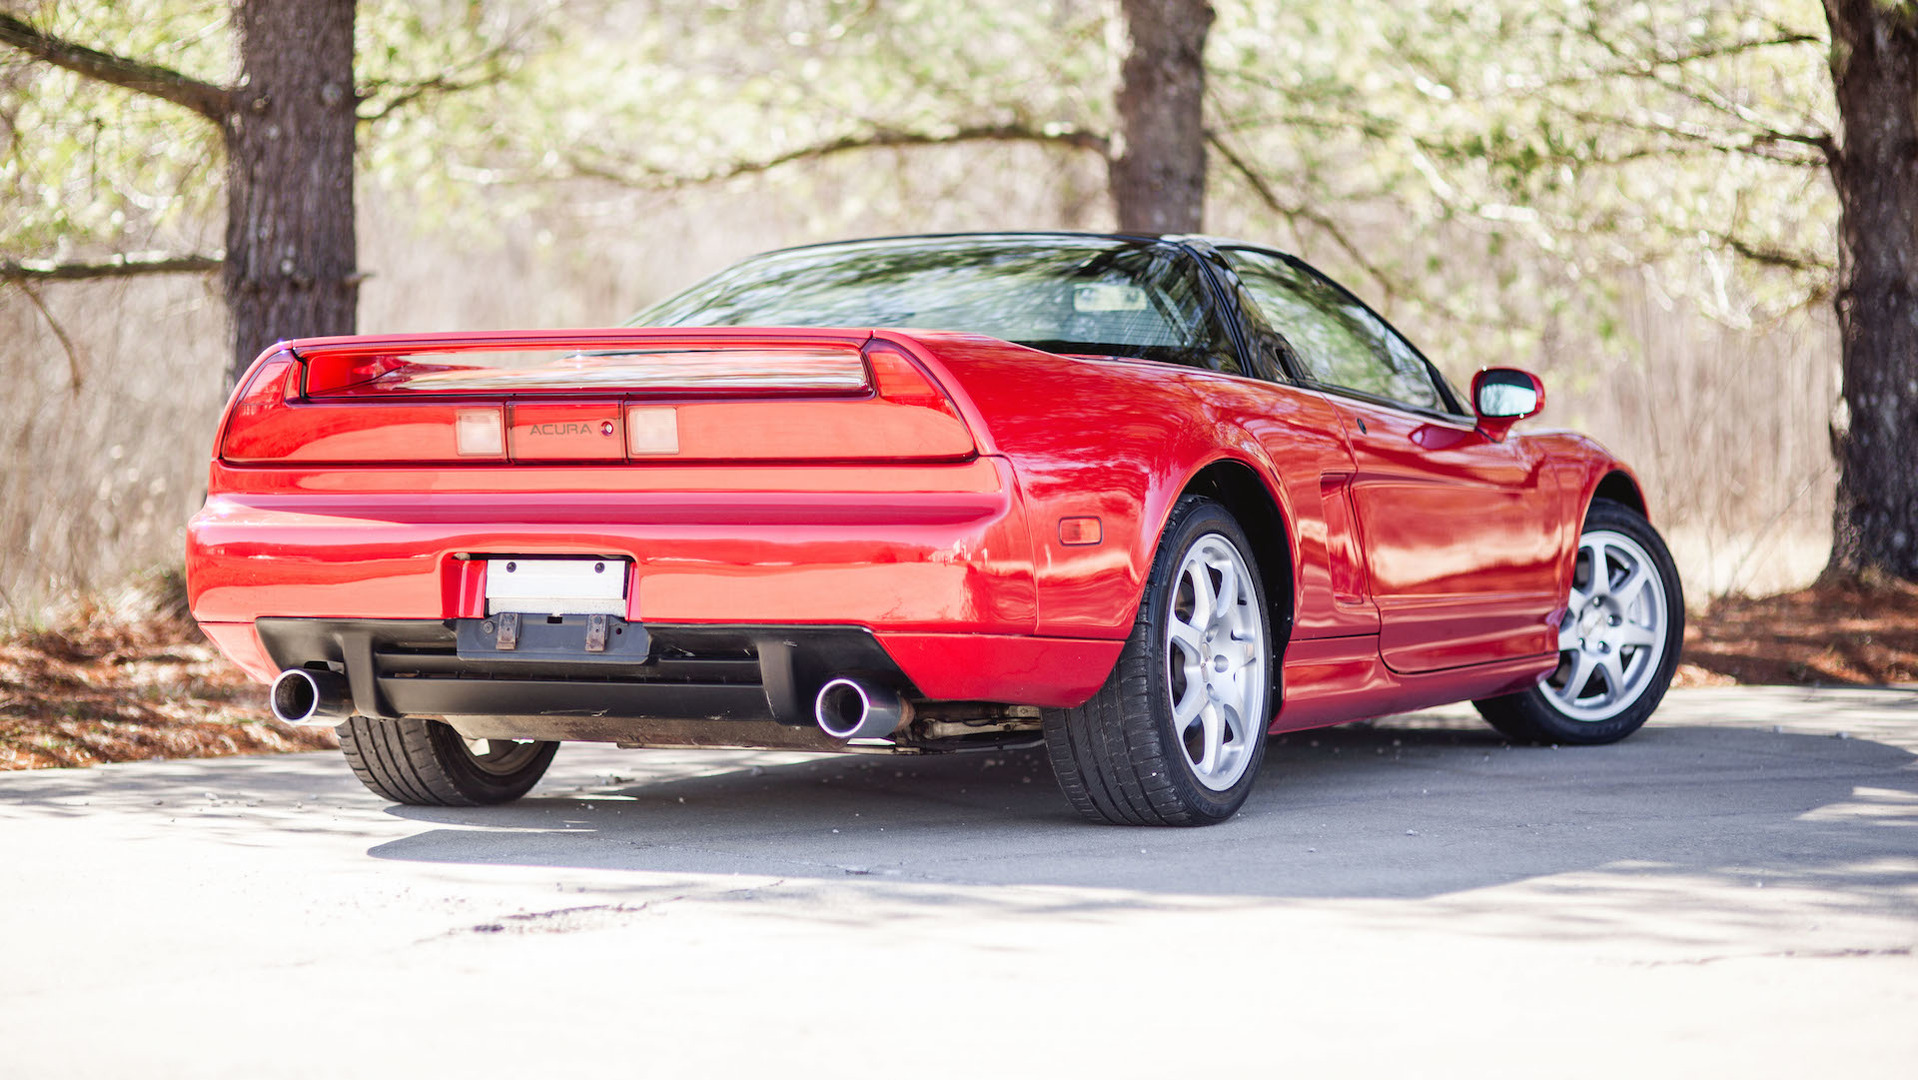 1999_Acura_NSX_Supercharged_eBay_03